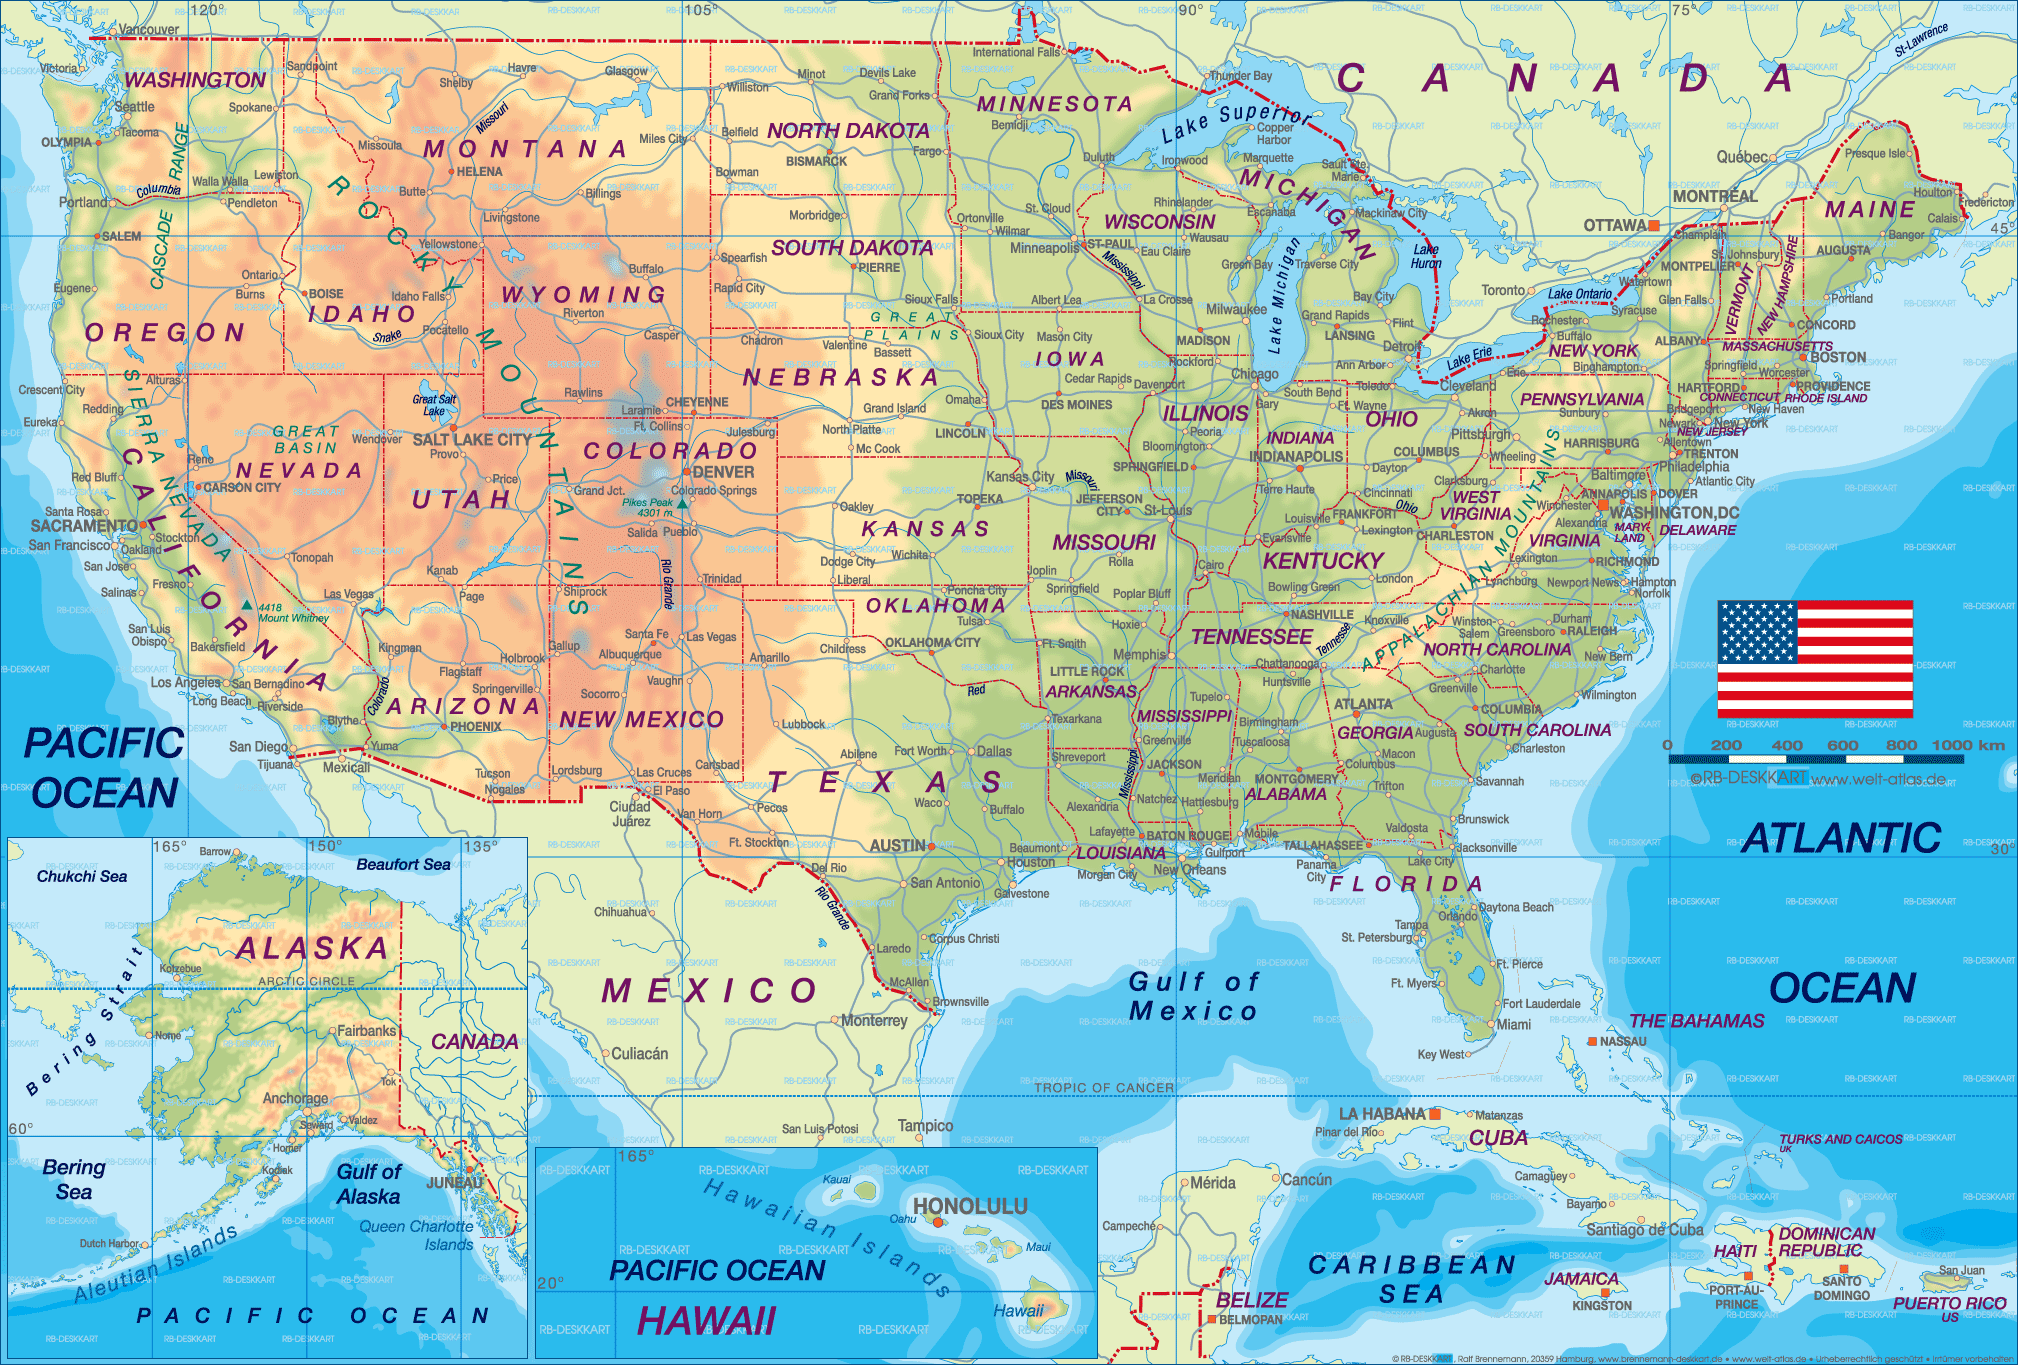 United States Cities Map Mapsofnet - United states cities map